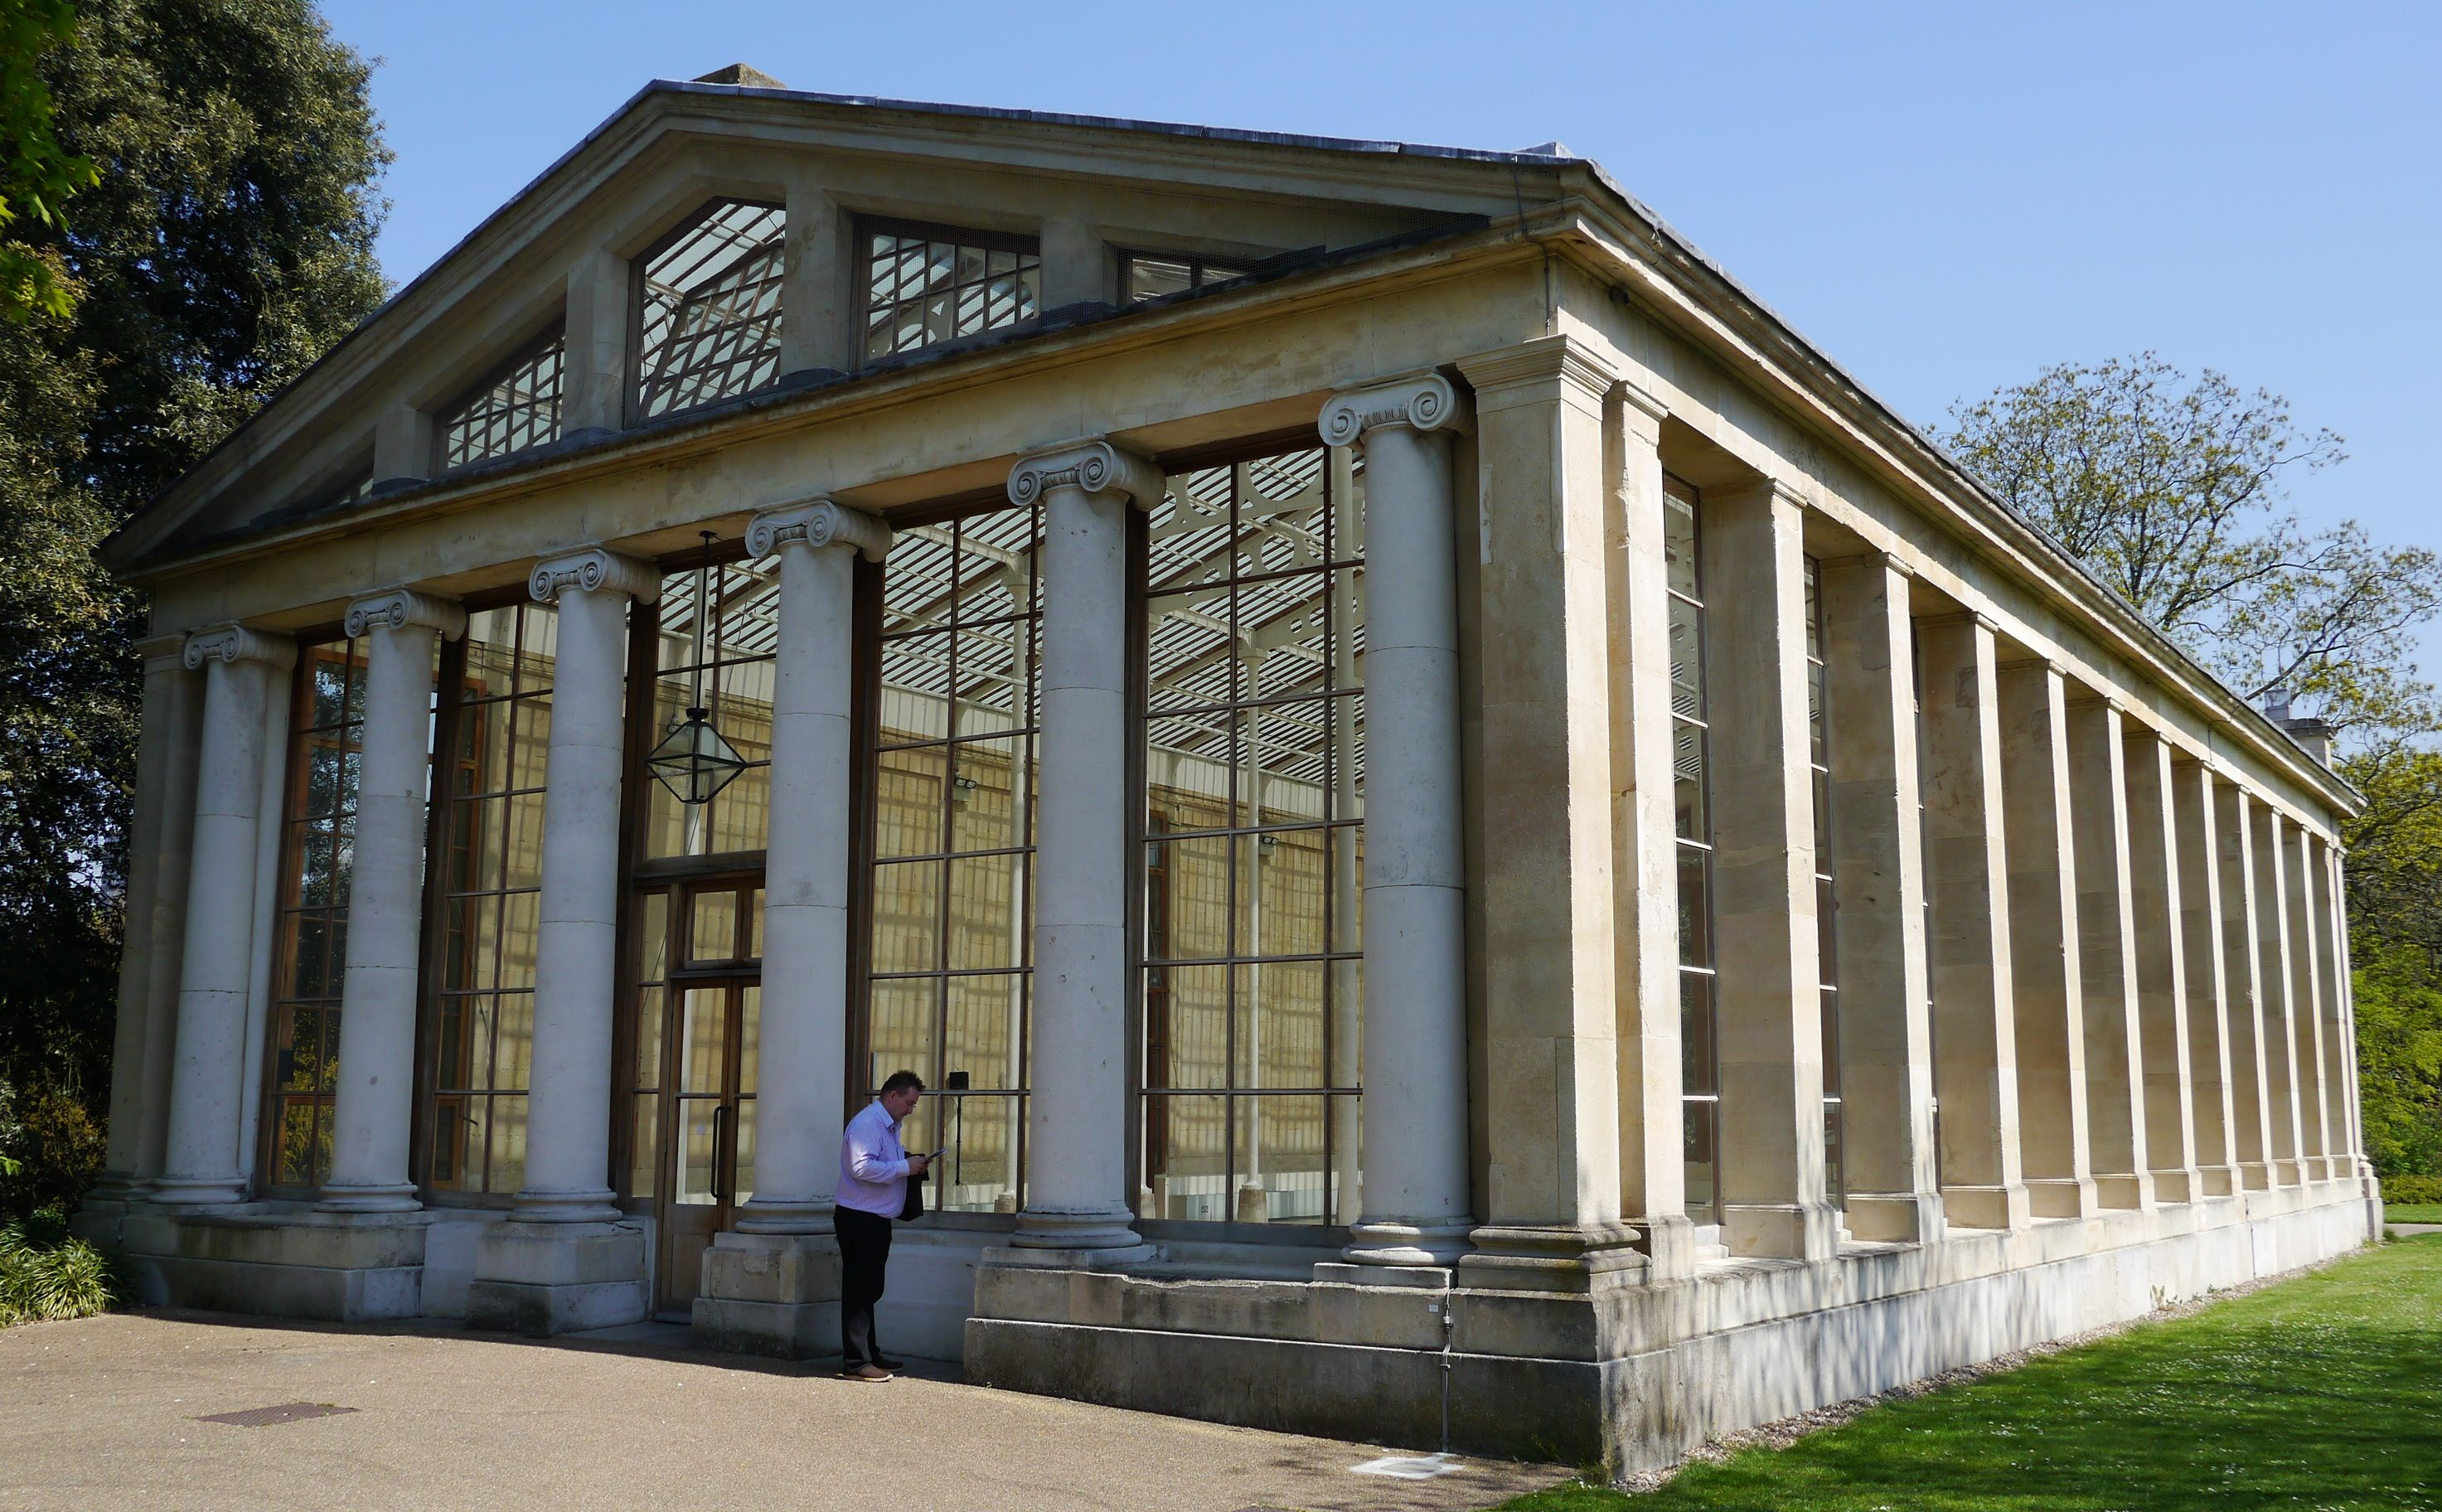 The Nash Conservatory One Of Kew 39 S Oldest 19 Century Glasshouses Originally One Of 4 Pavilions